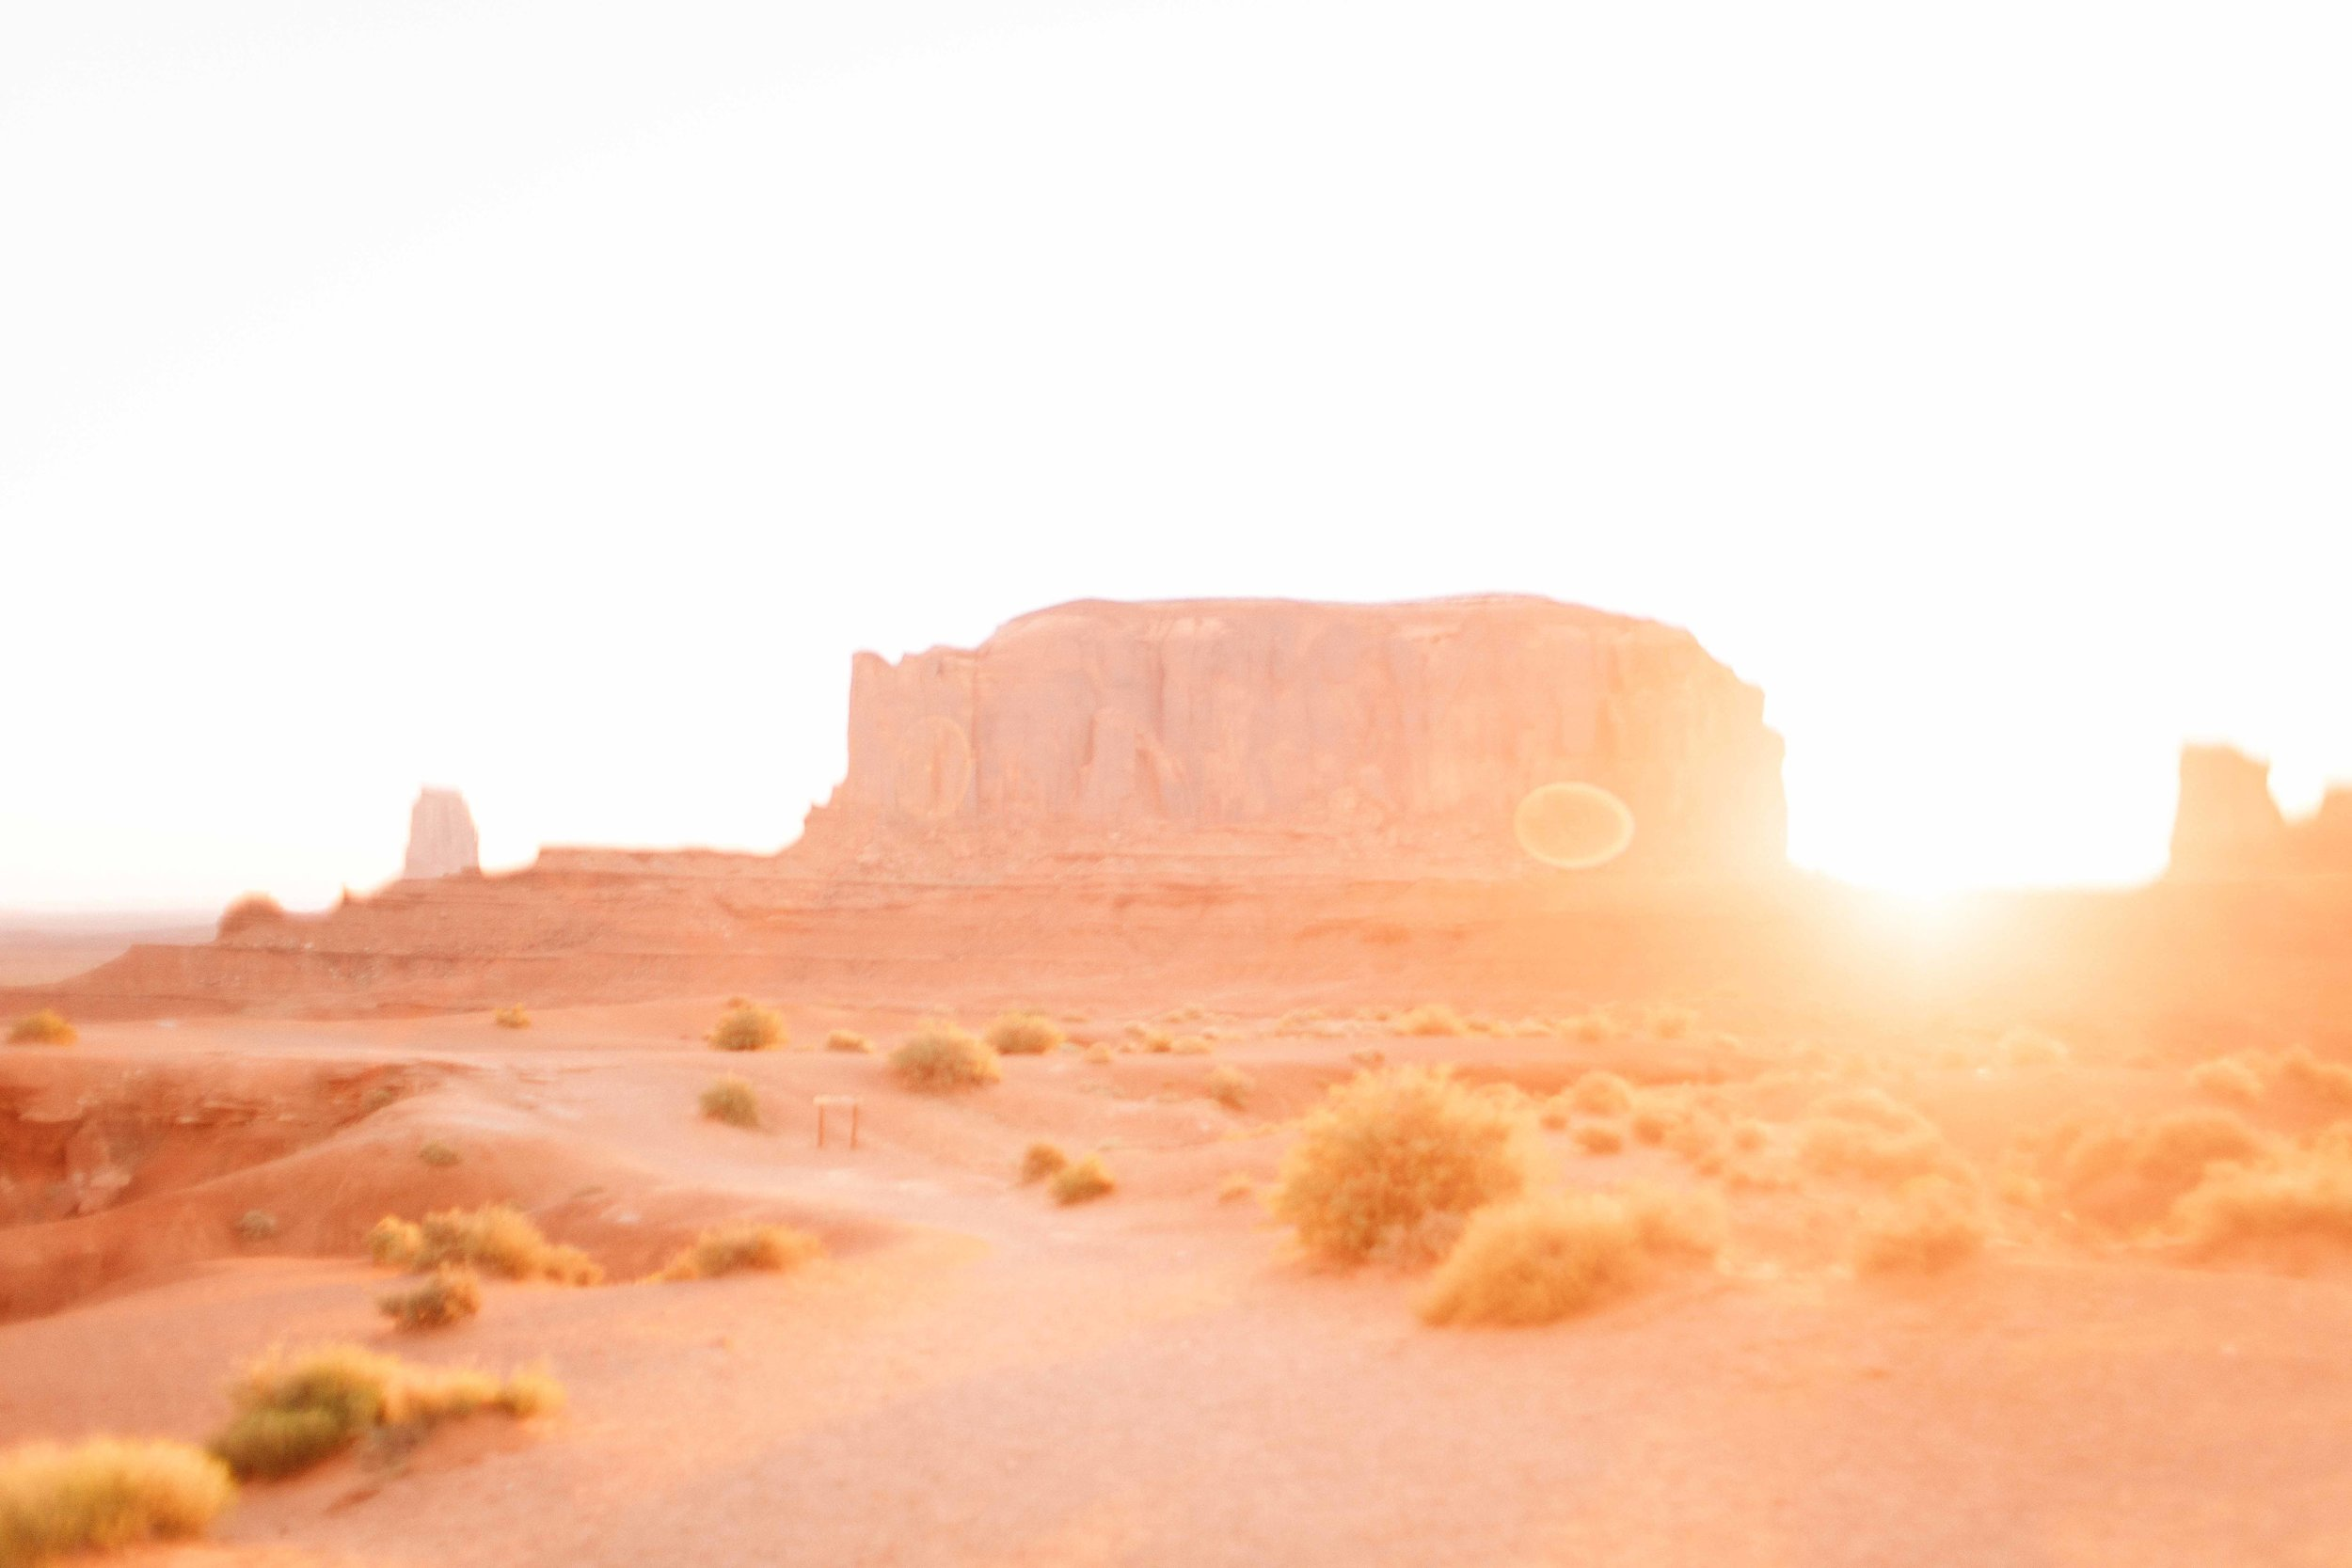 The next morning was another early one for sunrise, but so worth it. We went out to John Ford point inside of Monument Valley Park. It was just us and another couple there. Trust me, if you're wanting great epic shots without the crowds, sunrise is the way to go.